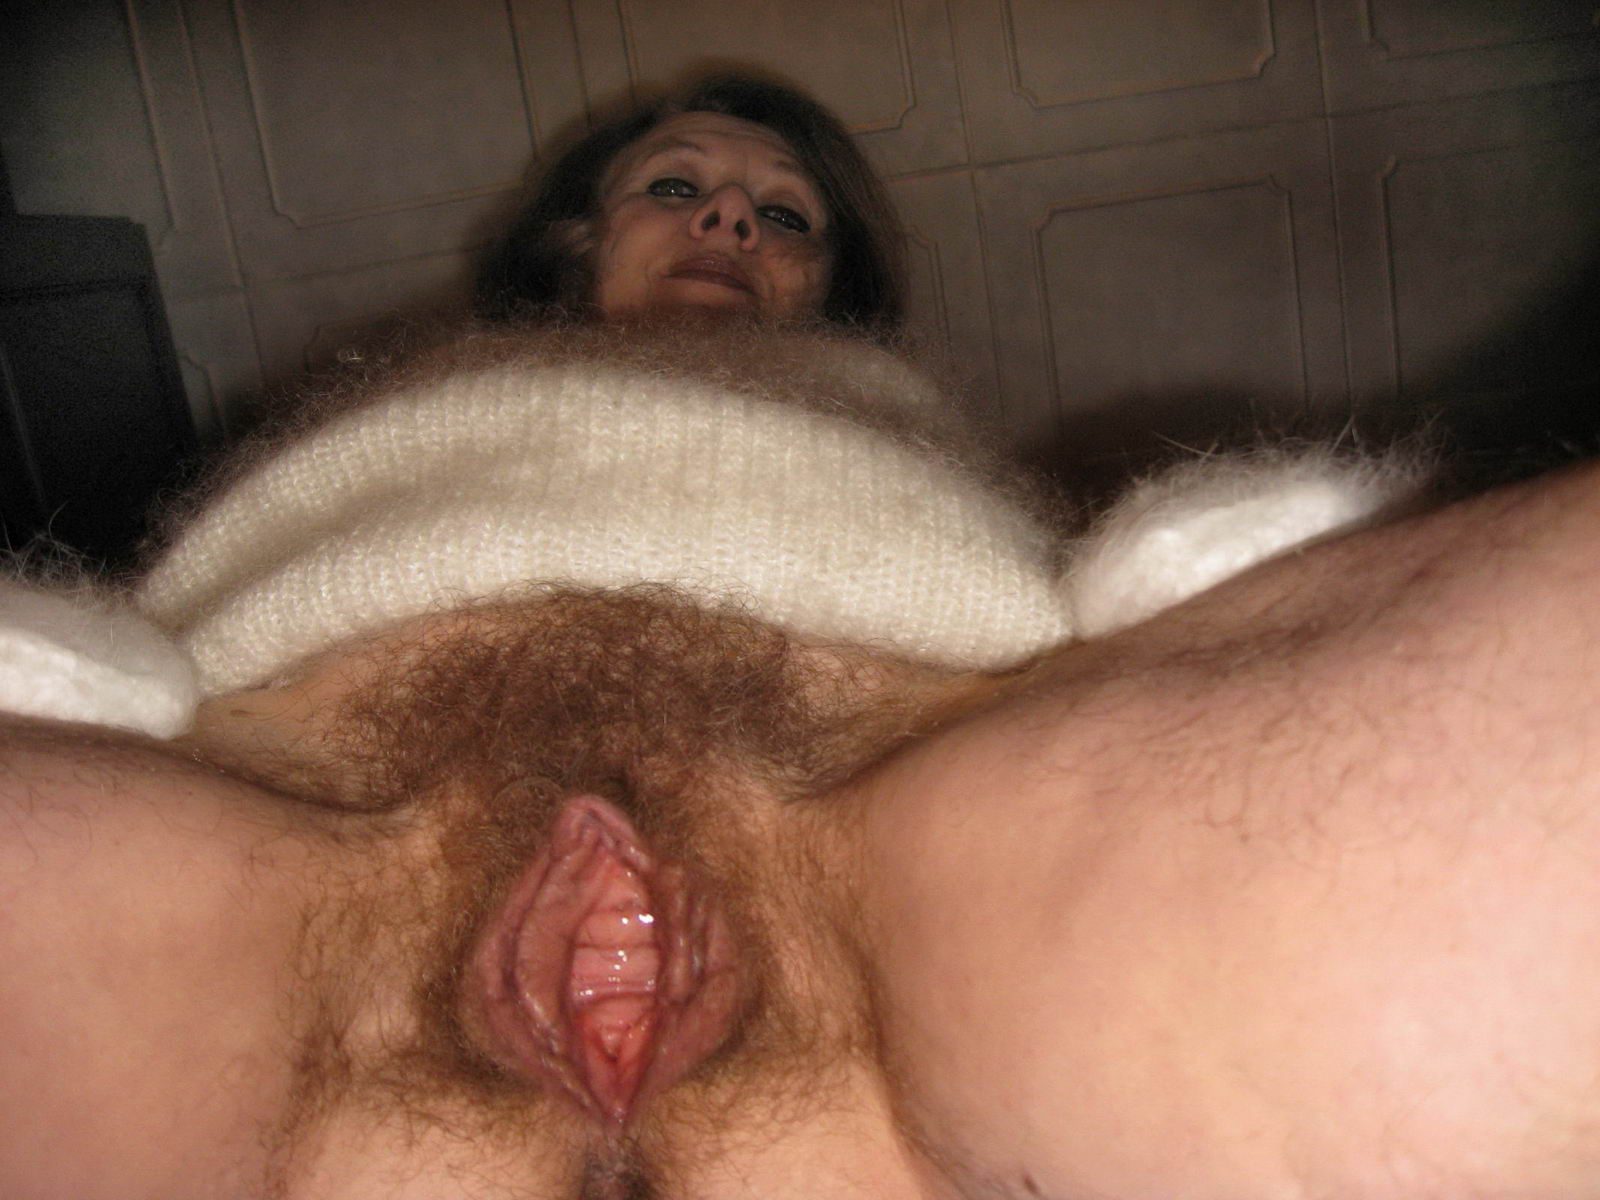 Not Free mature porn pix remarkable, this